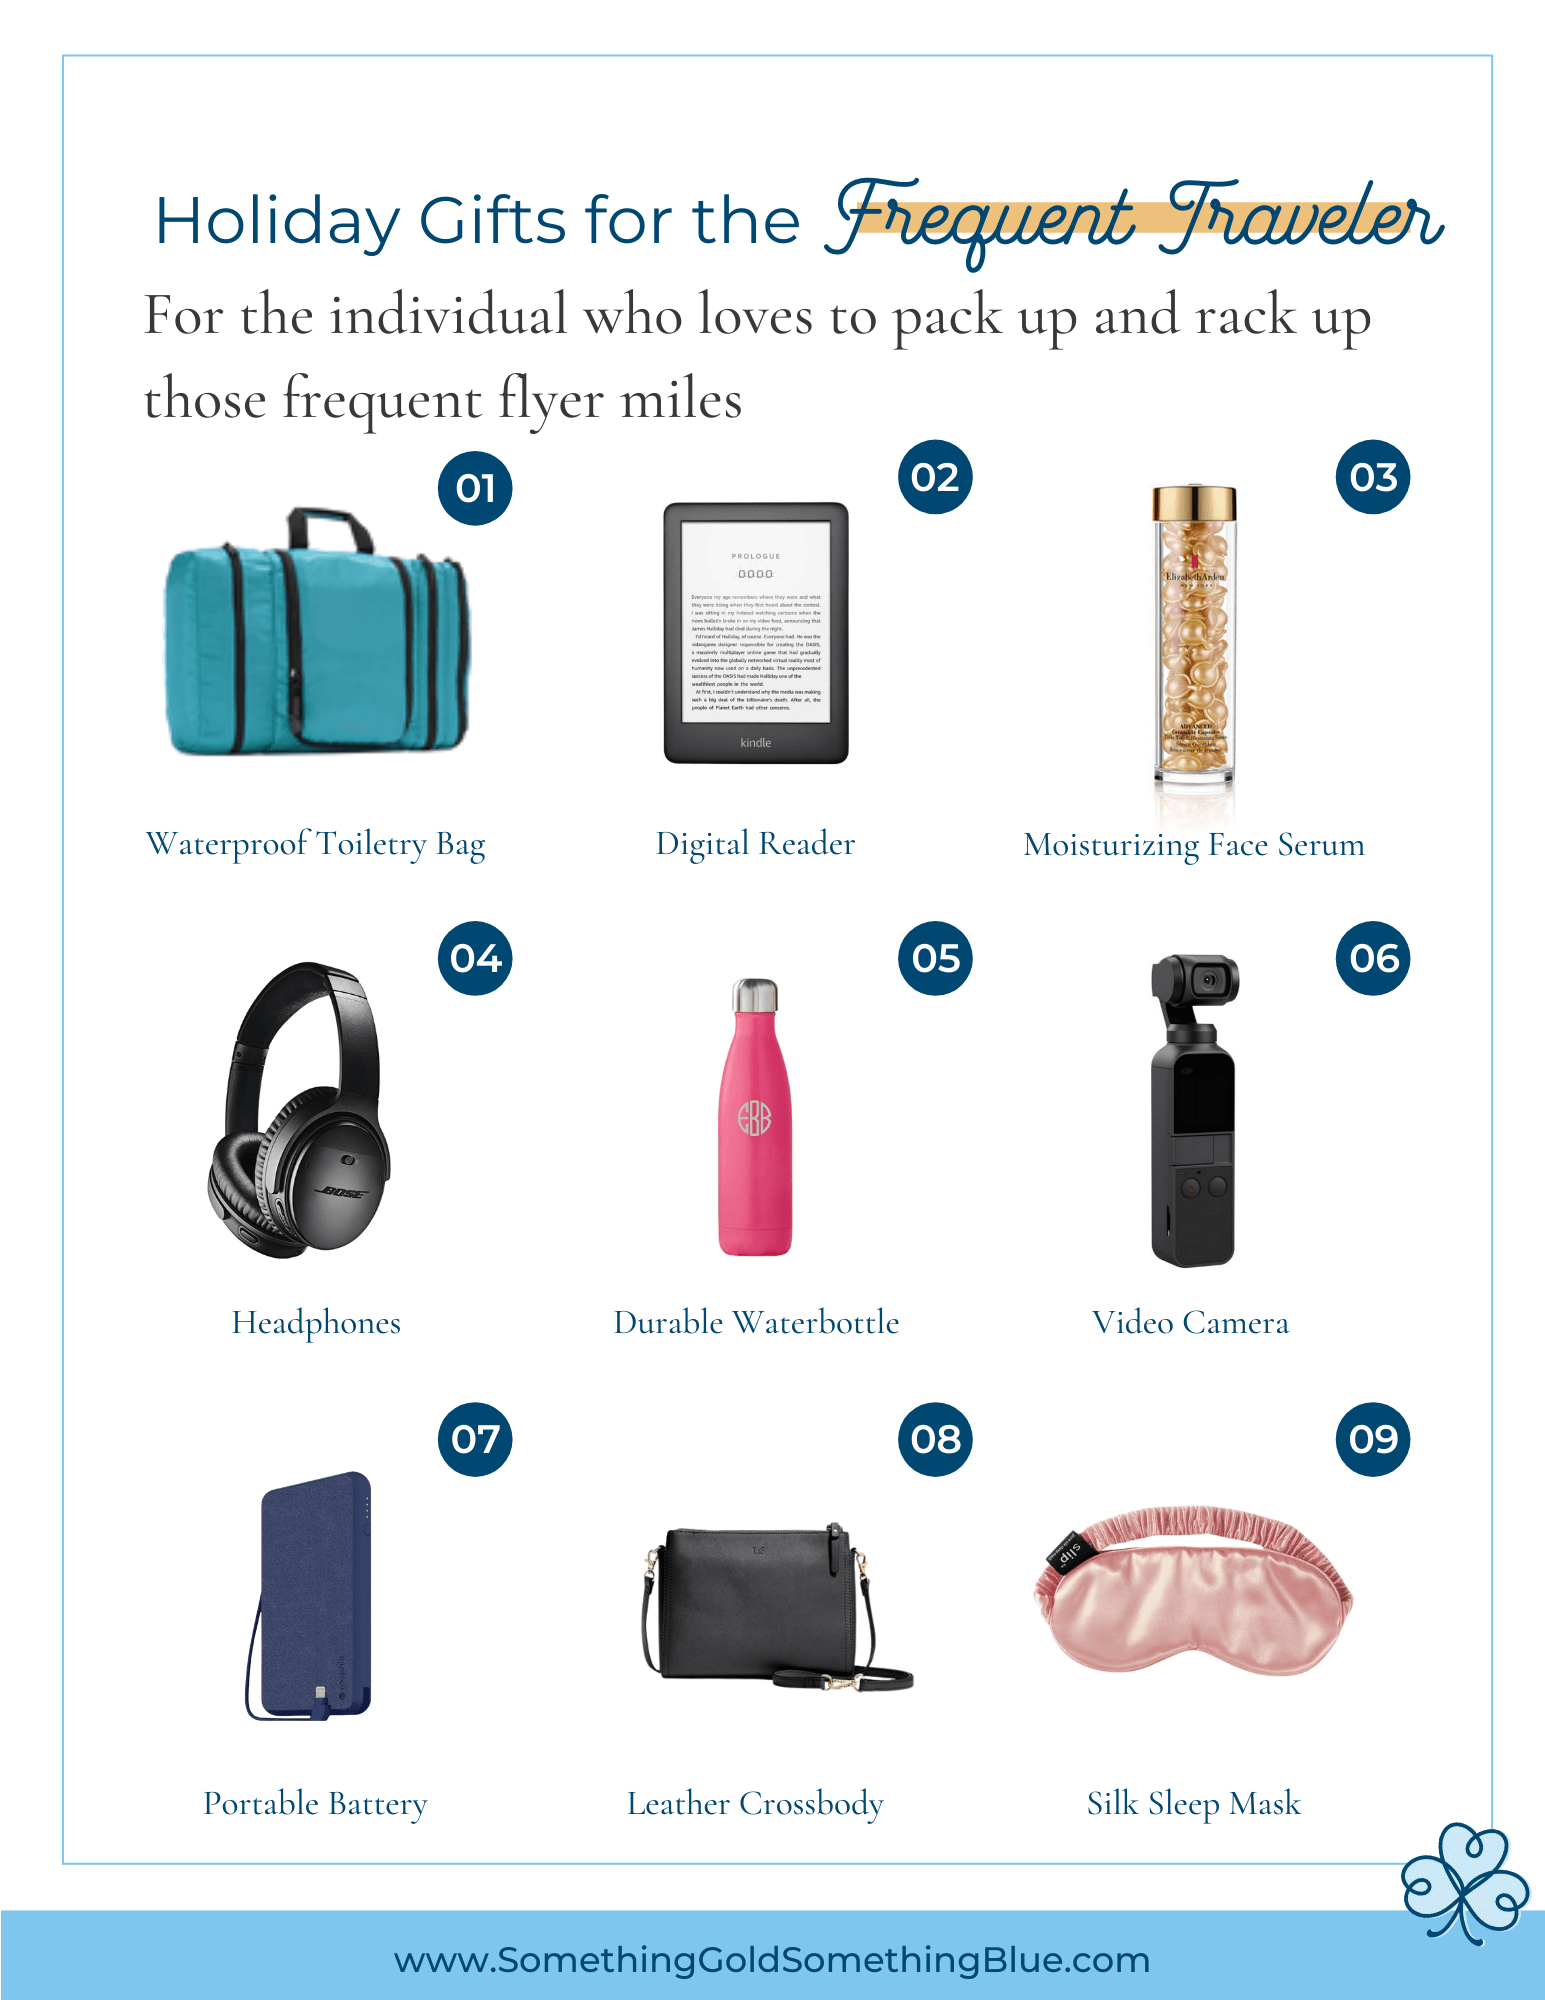 Gift guide for the frequent traveler and road warrior. These products will make packing for the next trip a breeze and allow for the traveler to capture every moment.